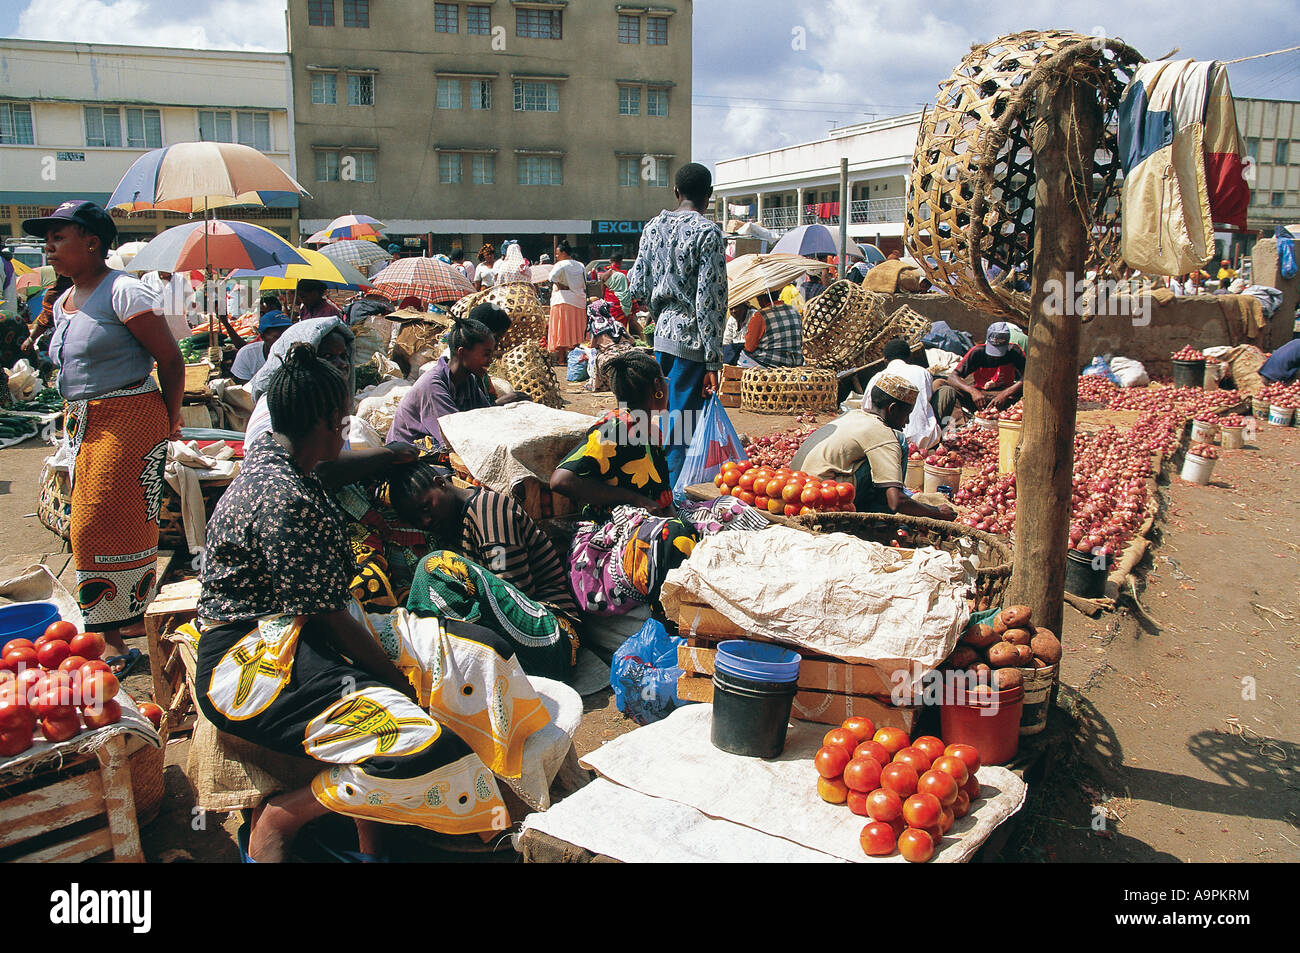 Market scene Arusha Tanzania East Africa The women have turned their heads to avoid being photographed - Stock Image